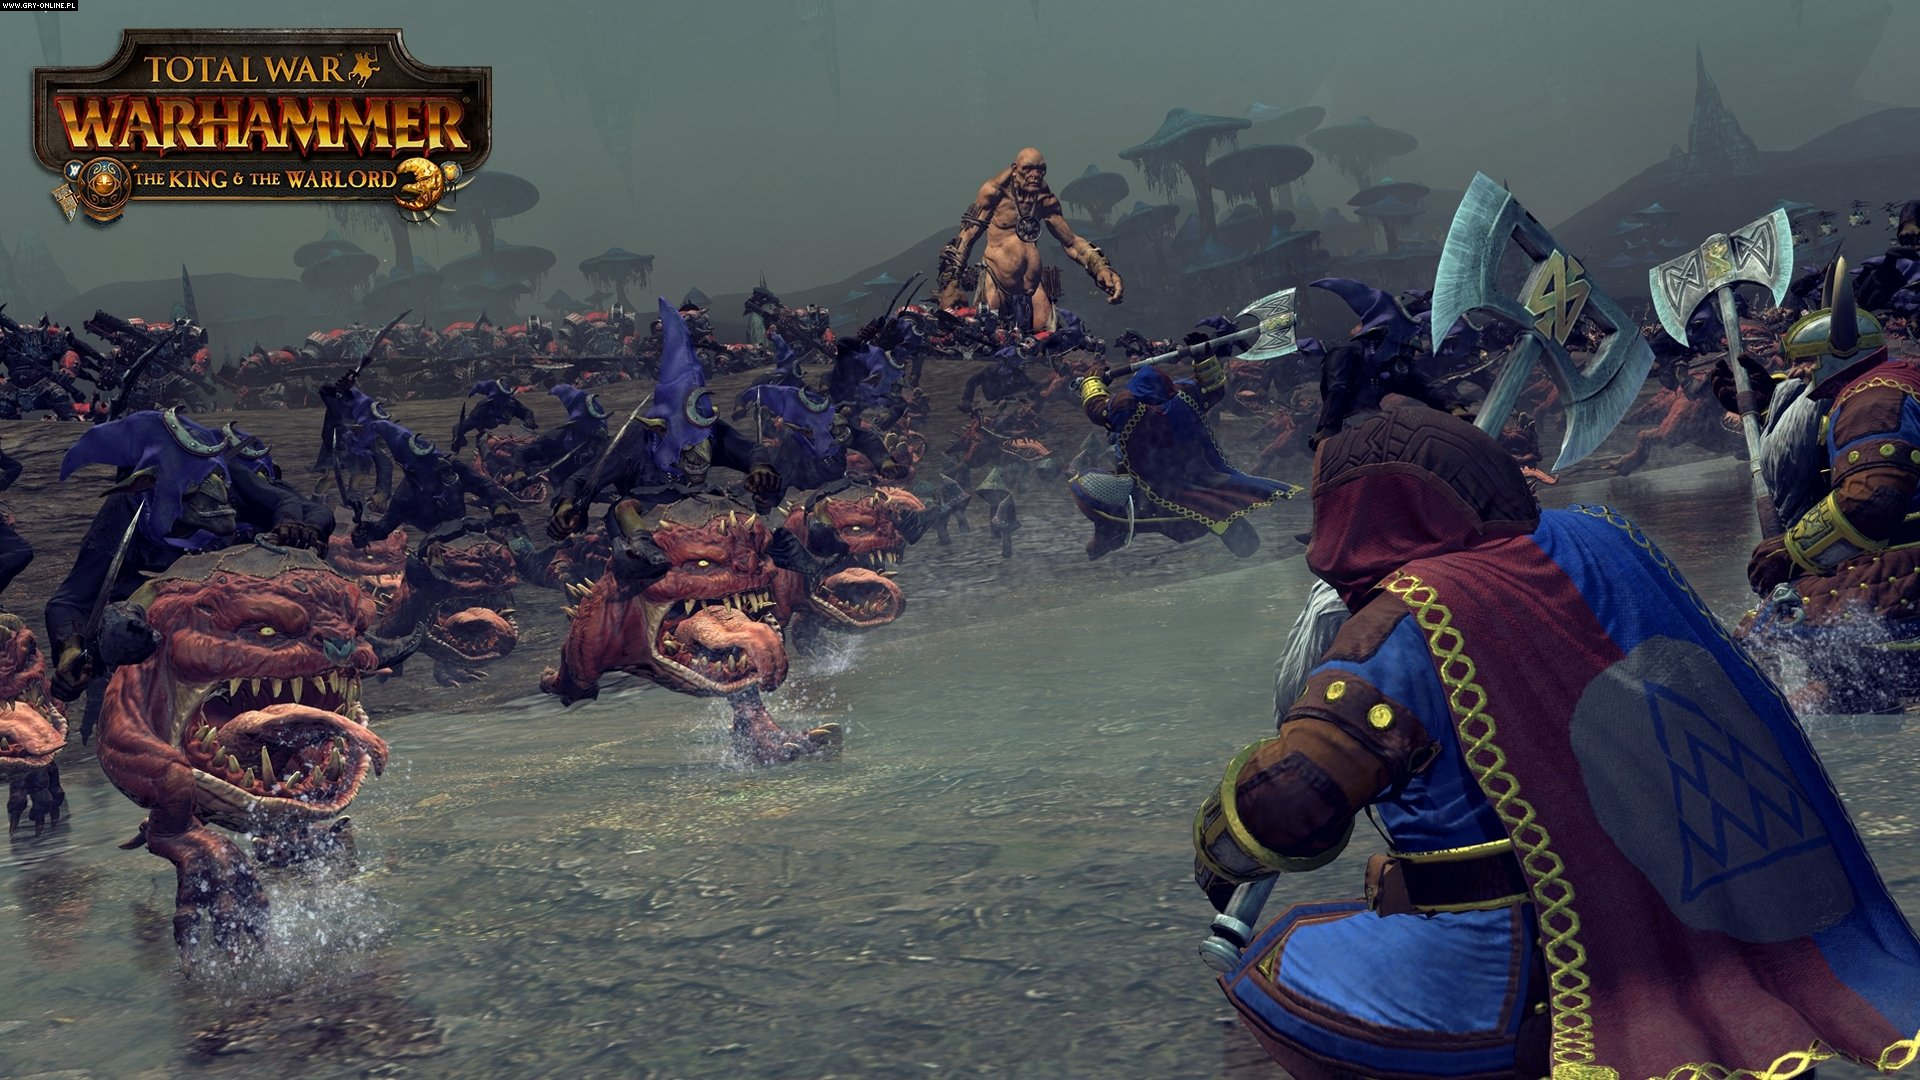 Total War: Warhammer PC Gry Screen 7/106, Creative Assembly, SEGA